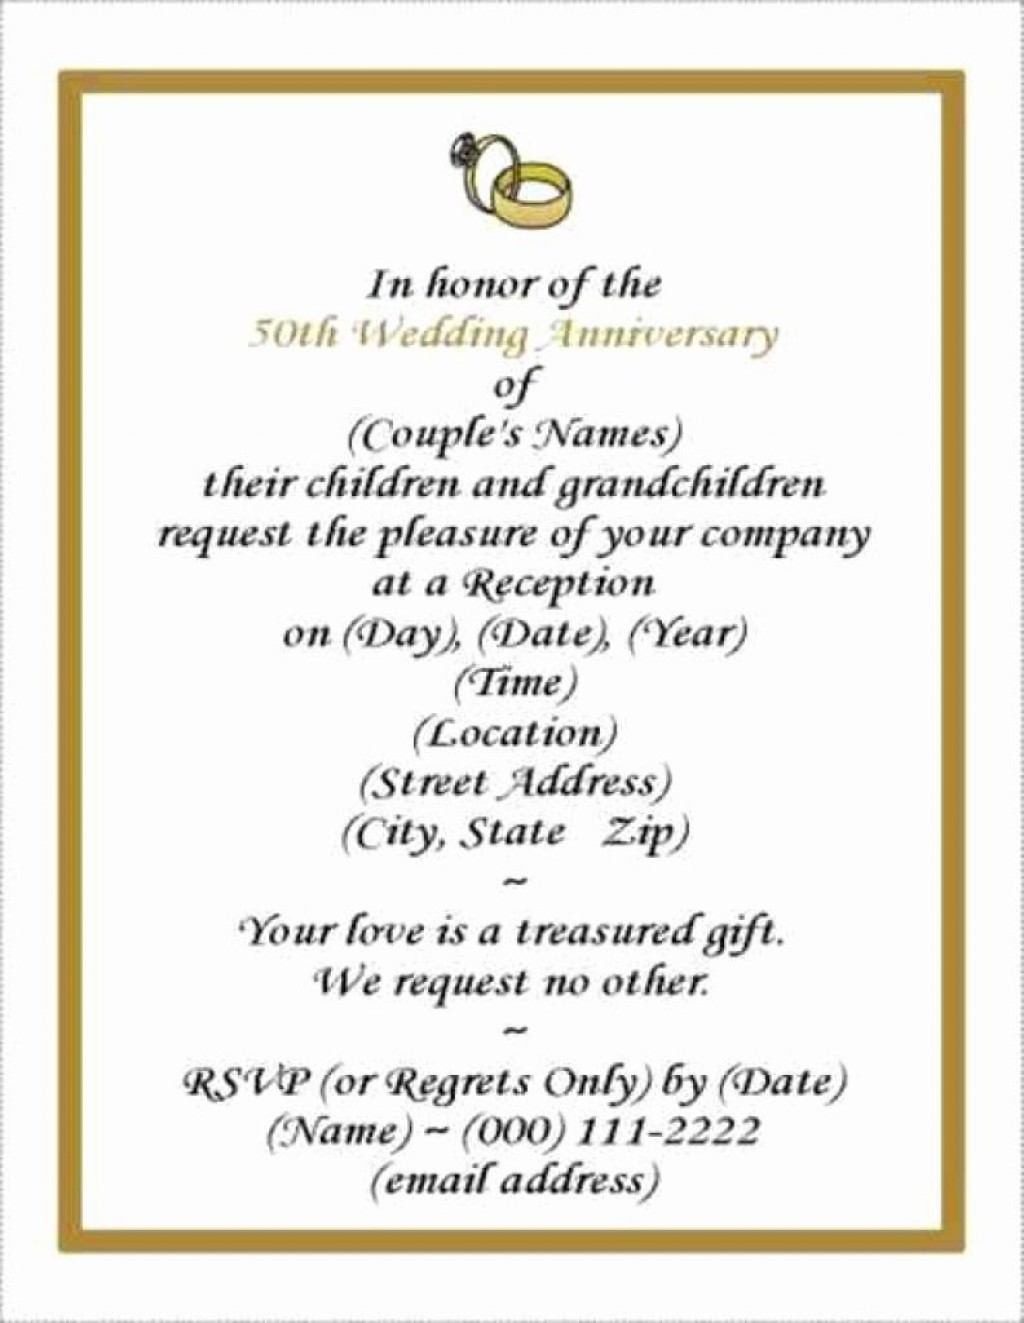 001 Dreaded 50th Anniversary Invitation Template Free High Resolution  For Word Golden Wedding DownloadLarge